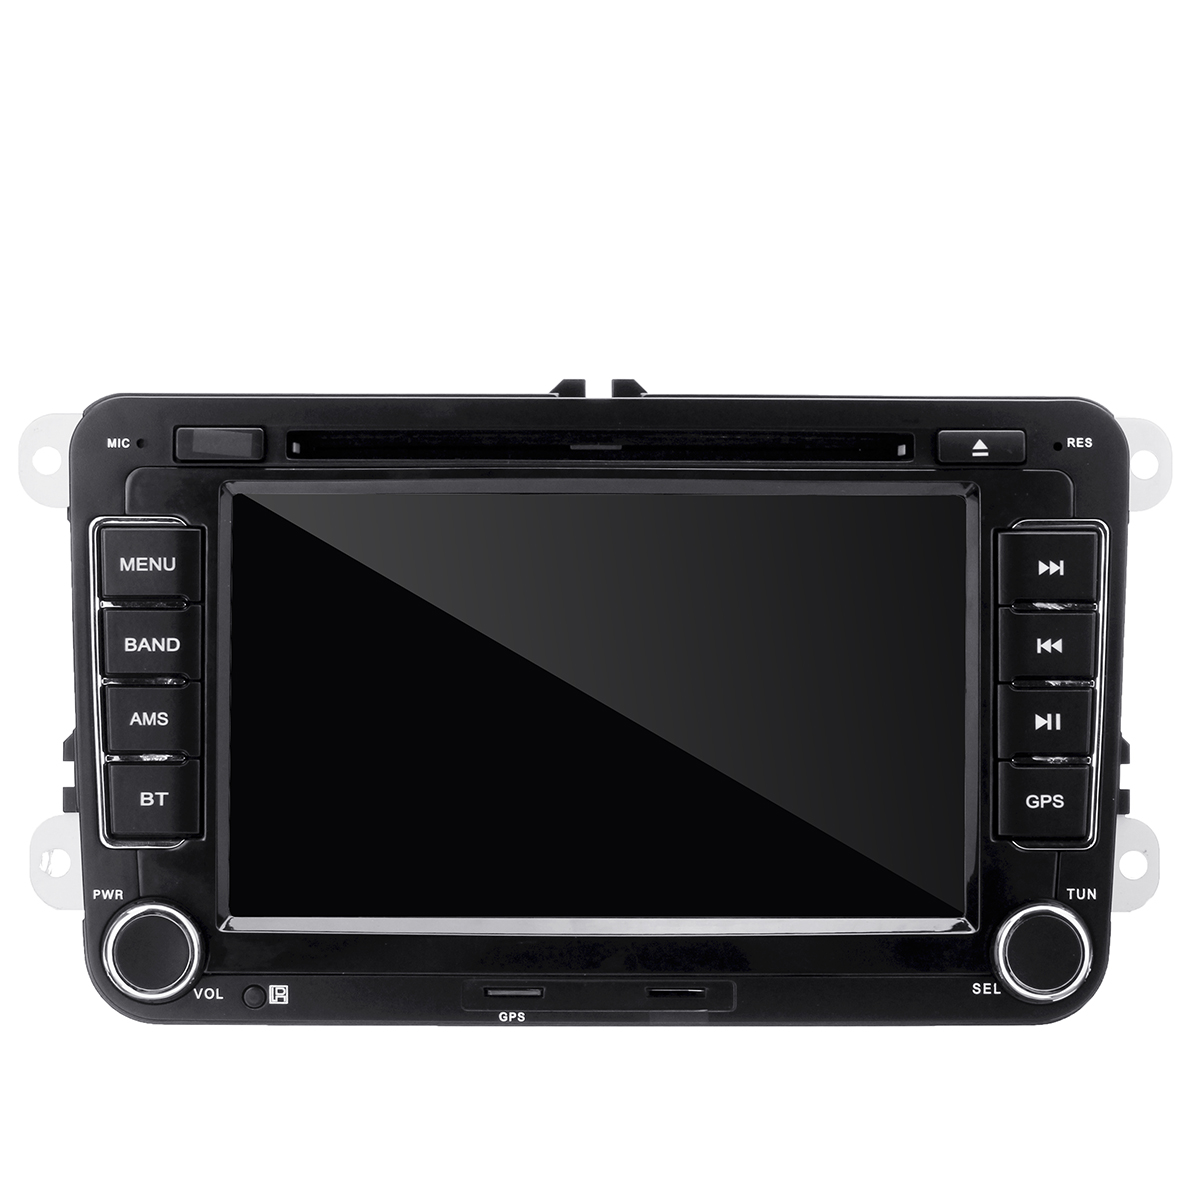 7Inch Car DVD Player Stereo Radio DAB GPS bluetooth for VW Golf MK5 MK6 Skoda Seat